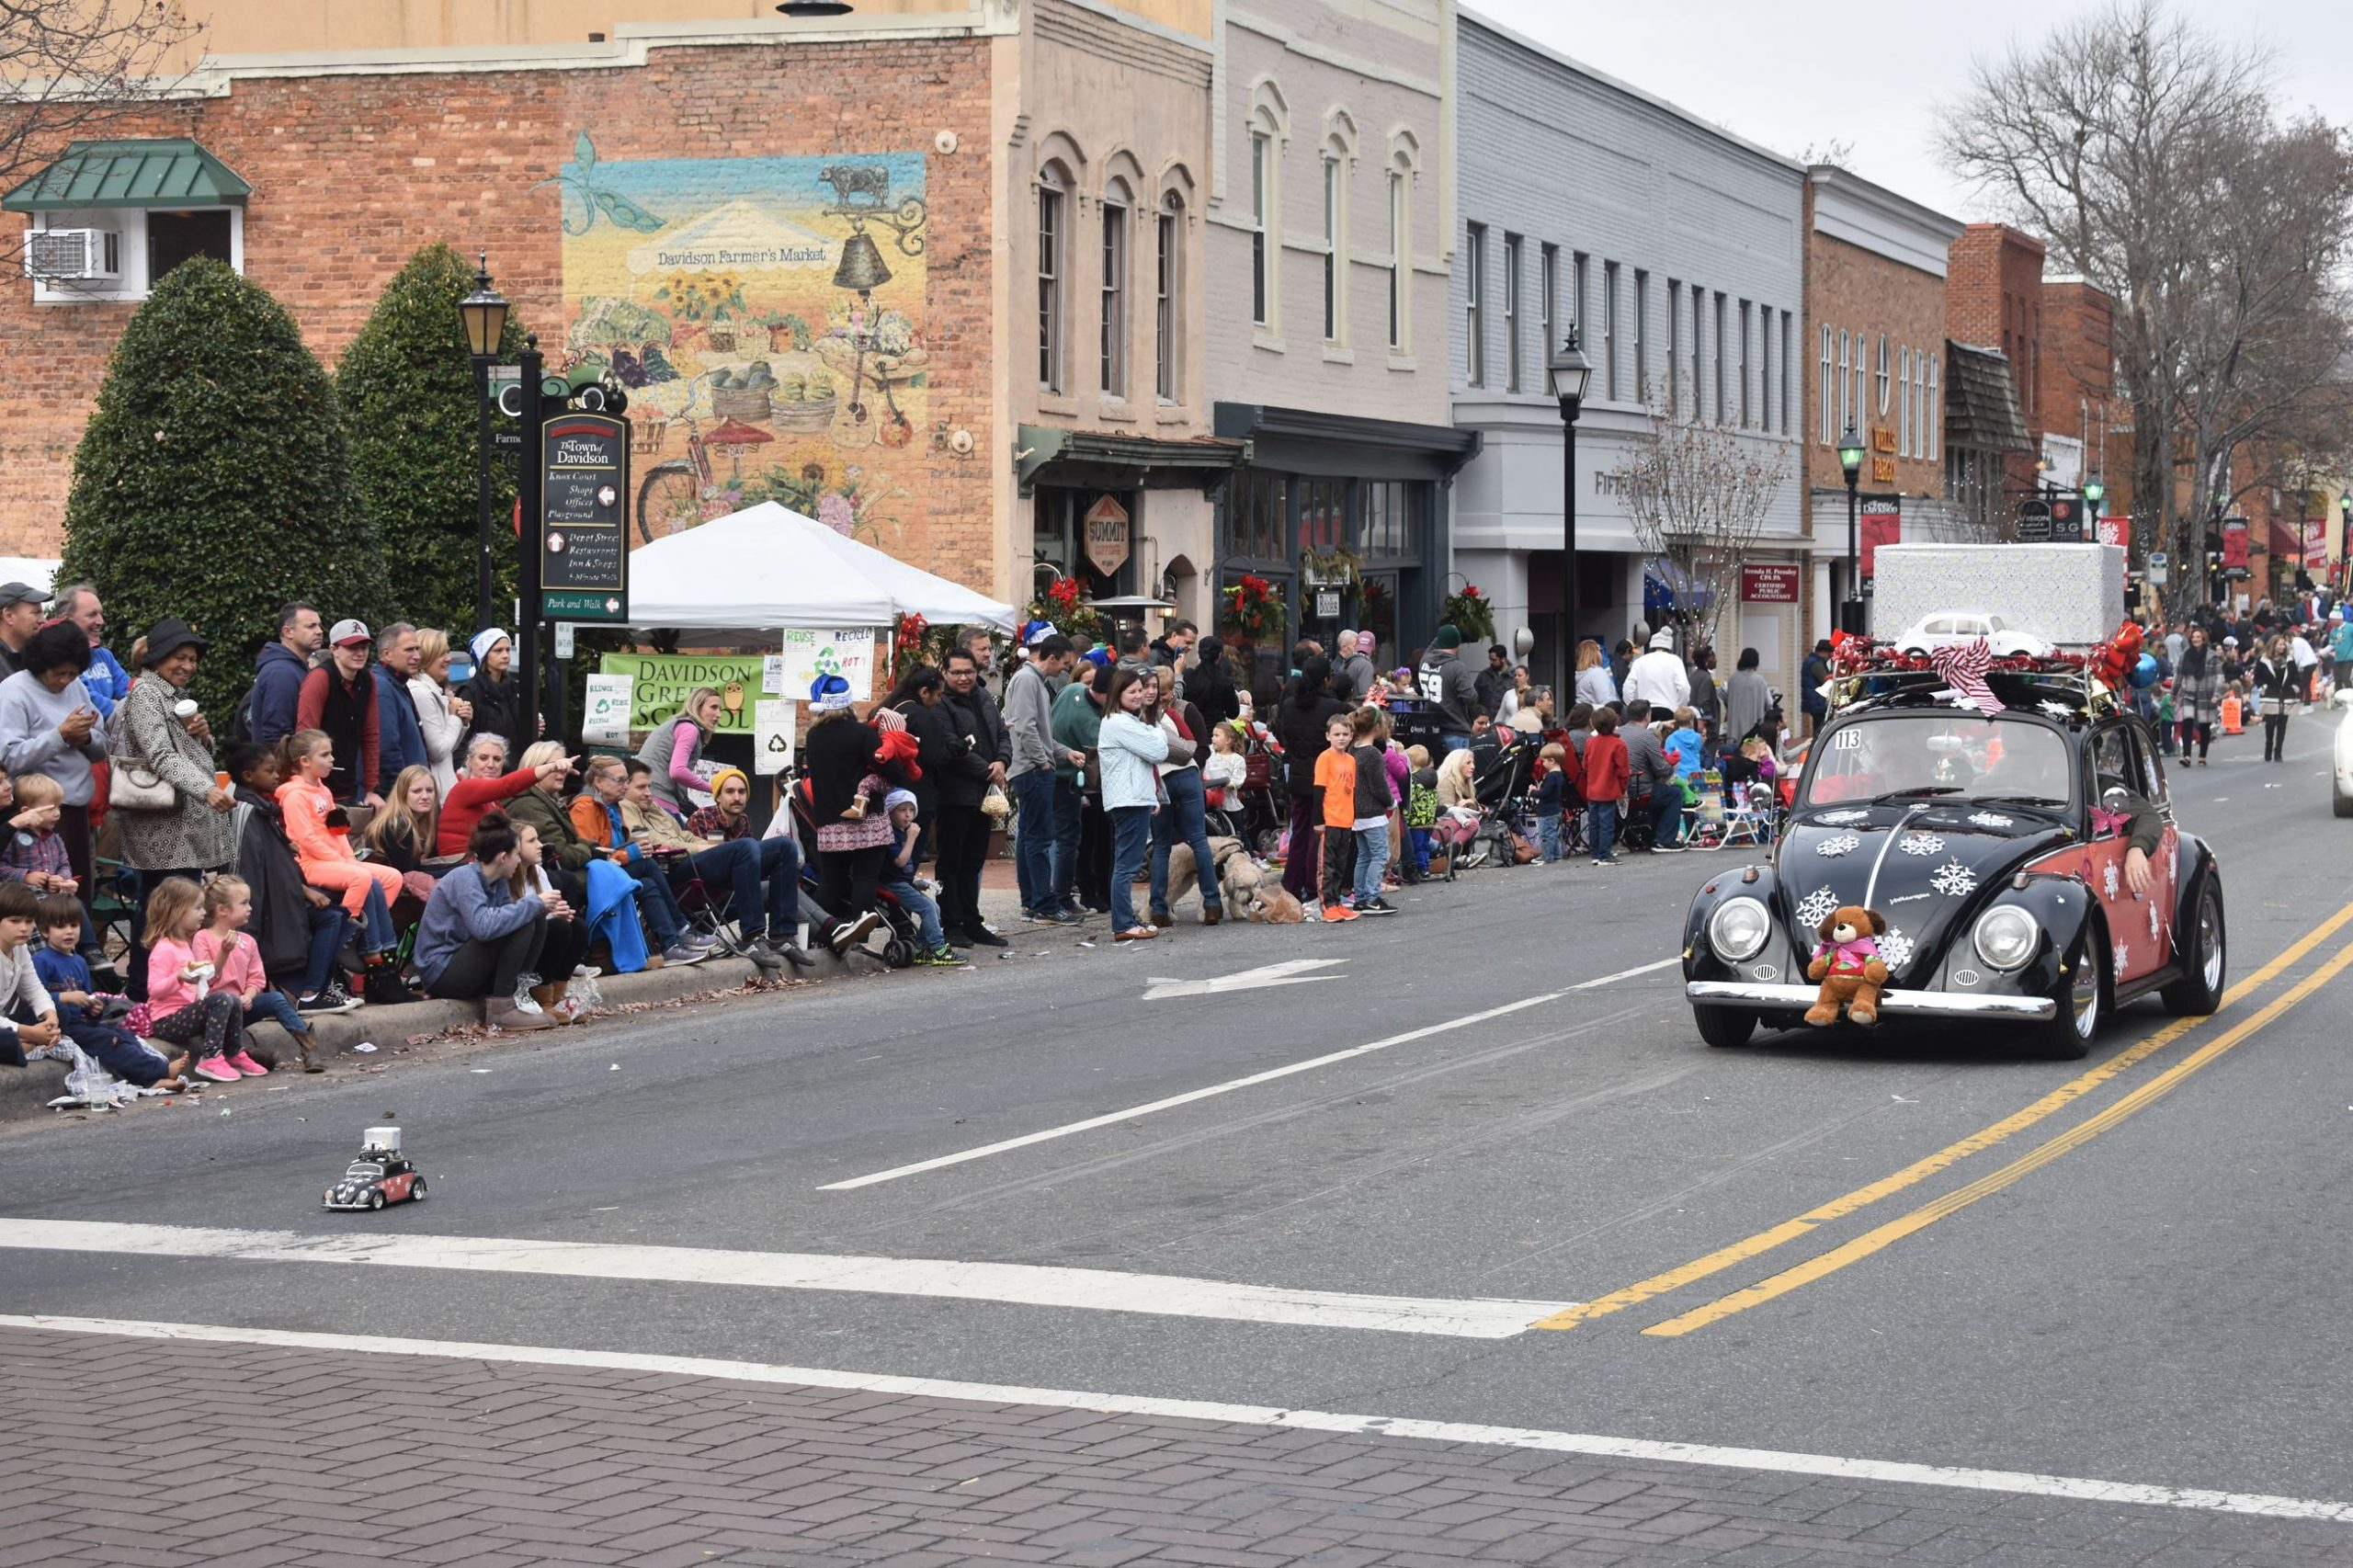 Image Courtesy: North Mecklenburg Holiday Parade